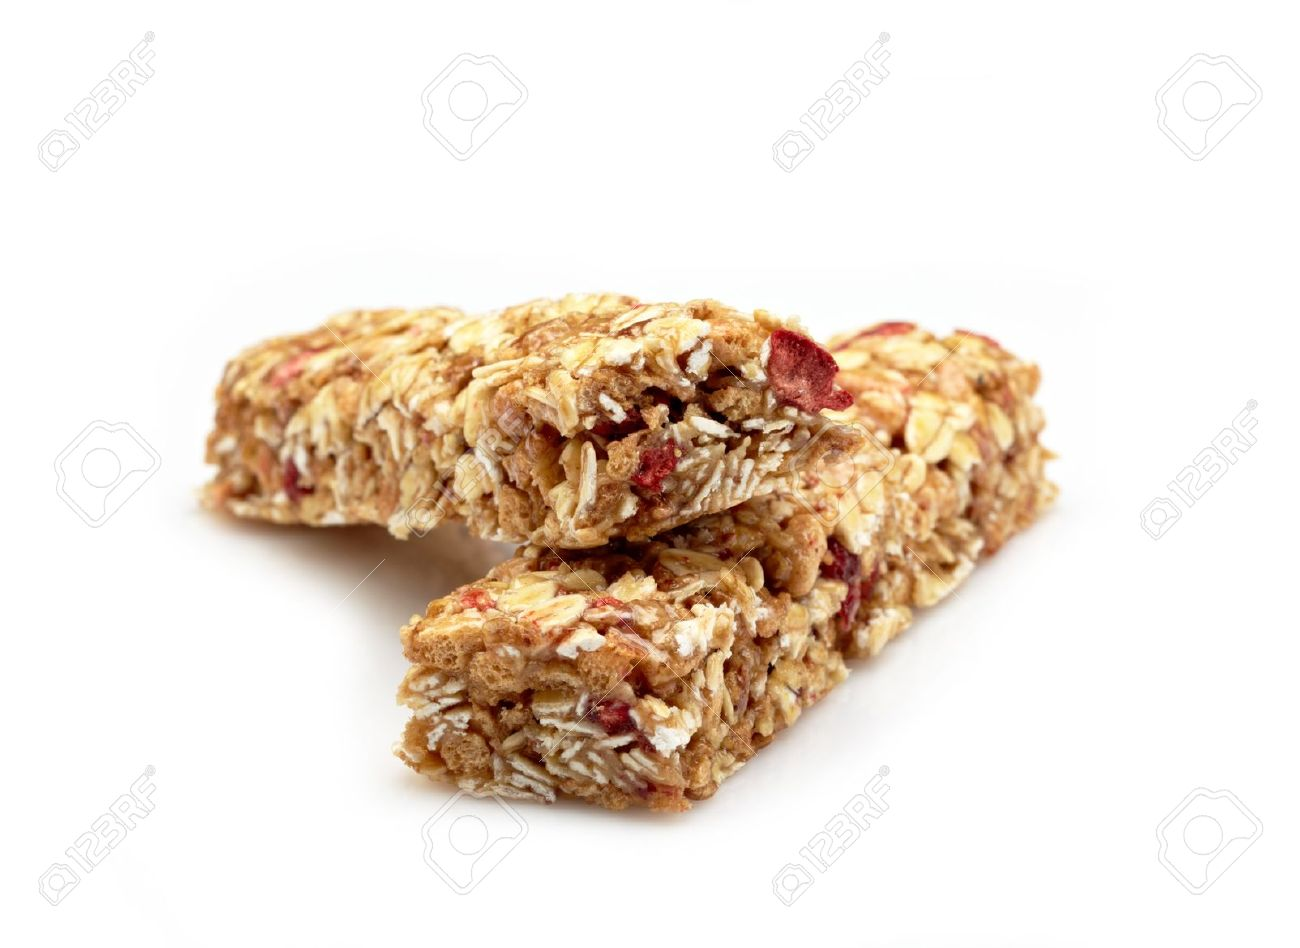 Granola Bar On White Background Stock Photo Picture And Royalty 1300x948